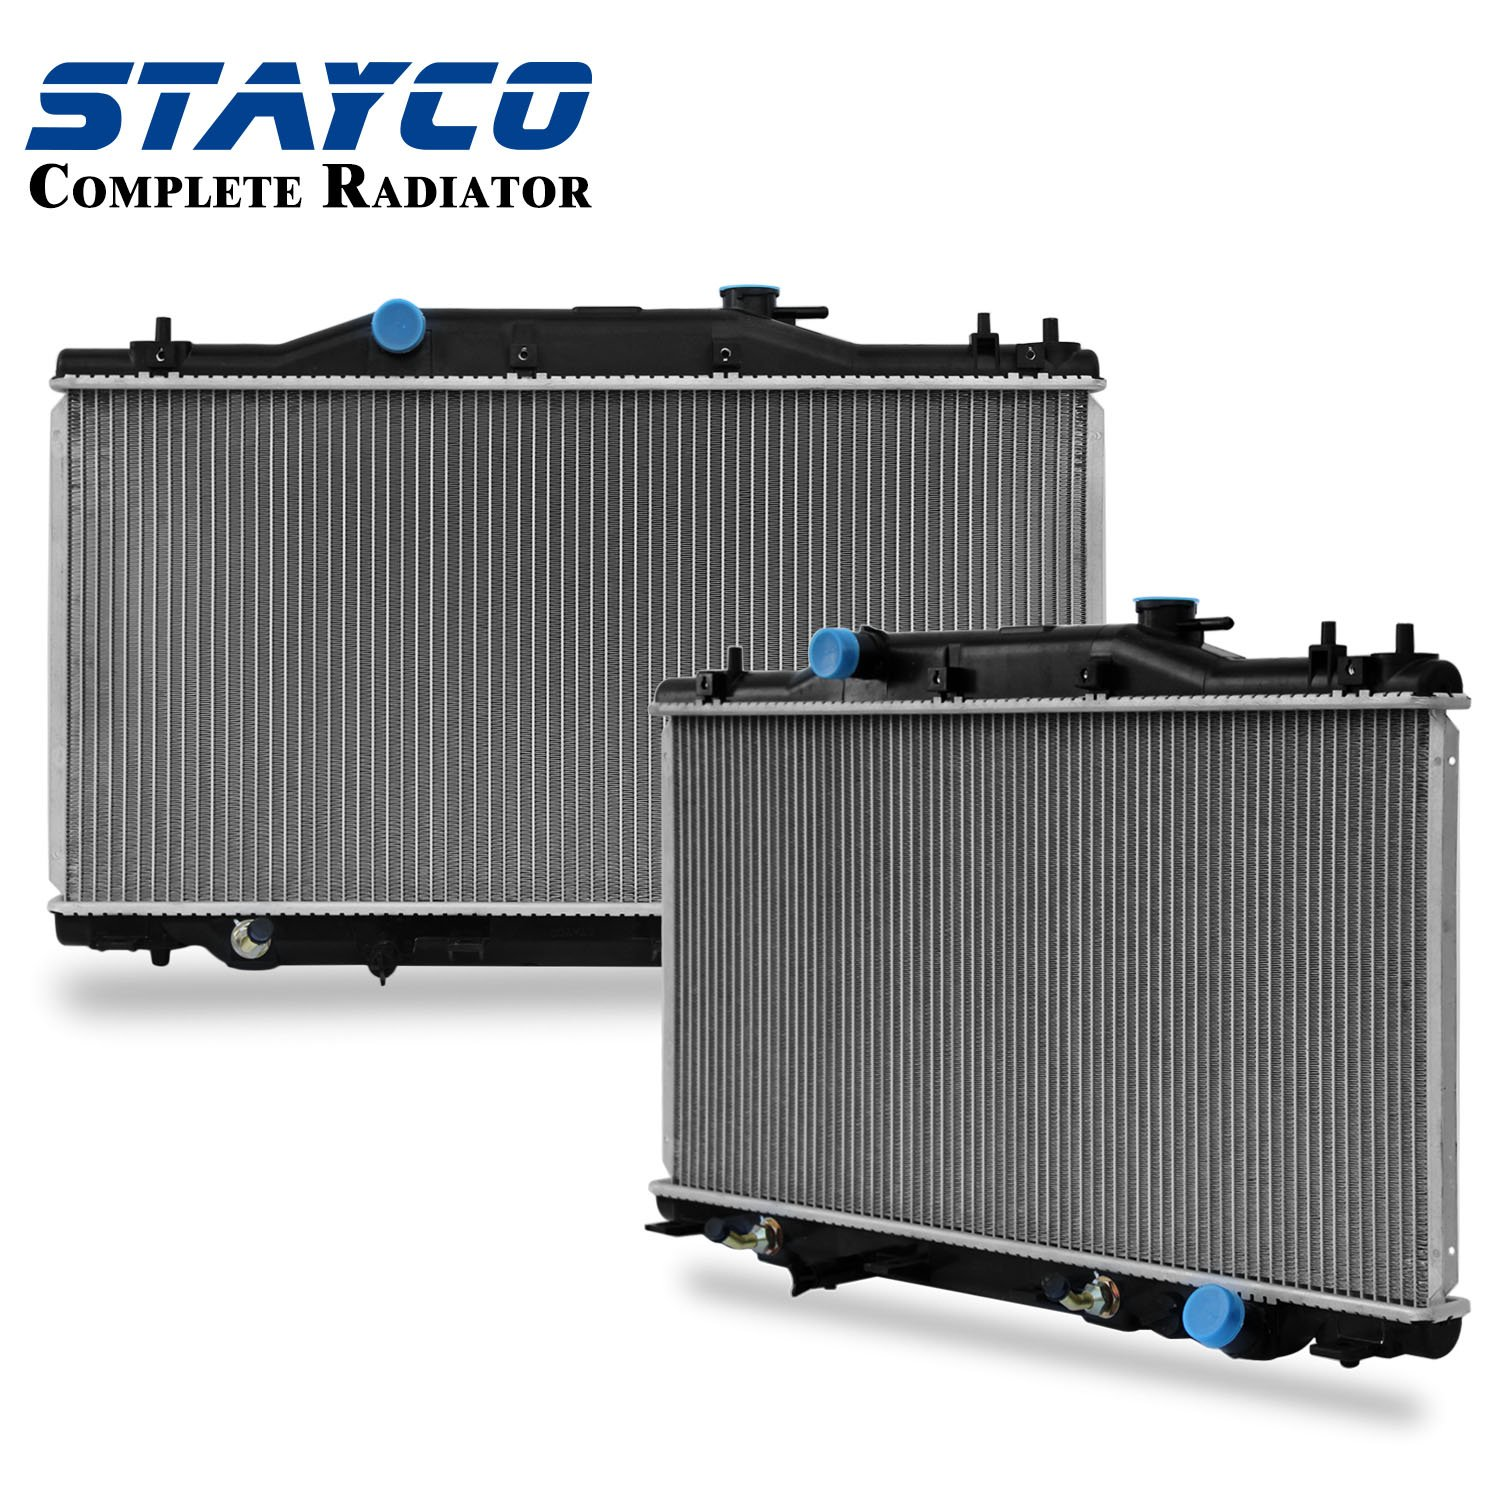 Cooling Systems Car & Truck Parts 2412 Radiator Fits For 2002-2006 Acura RSX 2.0L L4 2003 2004 2005